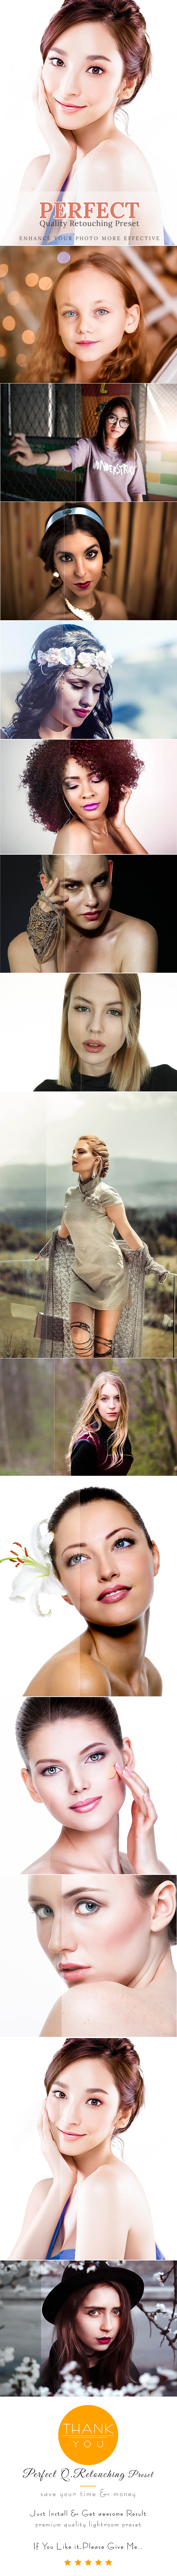 Professional 25 Quality Retouching Preset - Lightroom Presets Add-ons